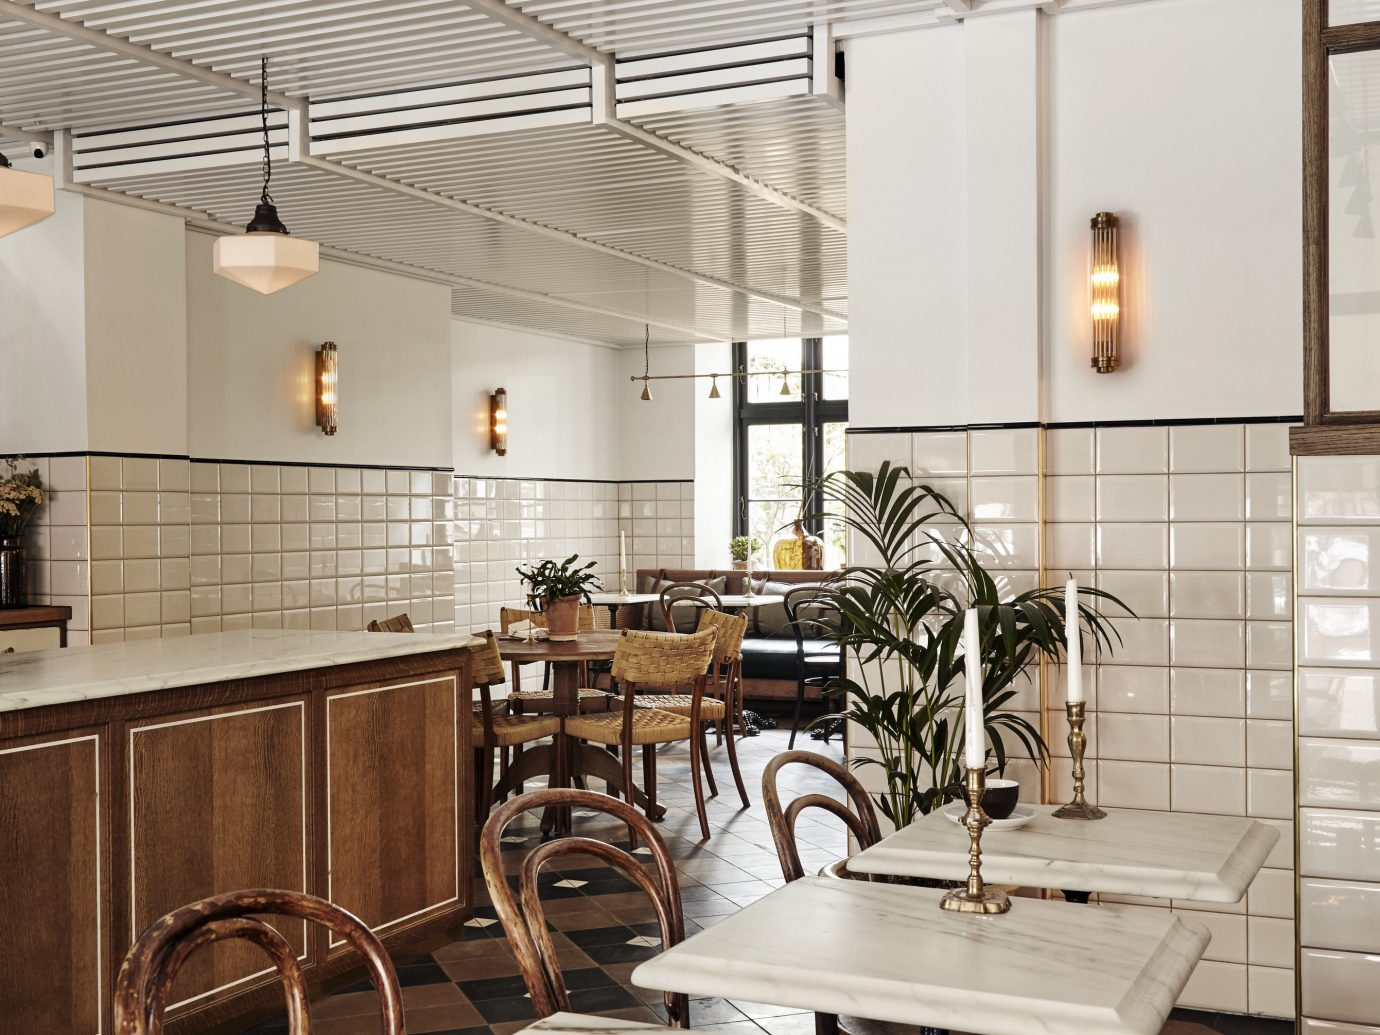 Boutique Hotels Copenhagen Denmark Hotels Trip Ideas indoor interior design Kitchen flooring countertop ceiling tiled